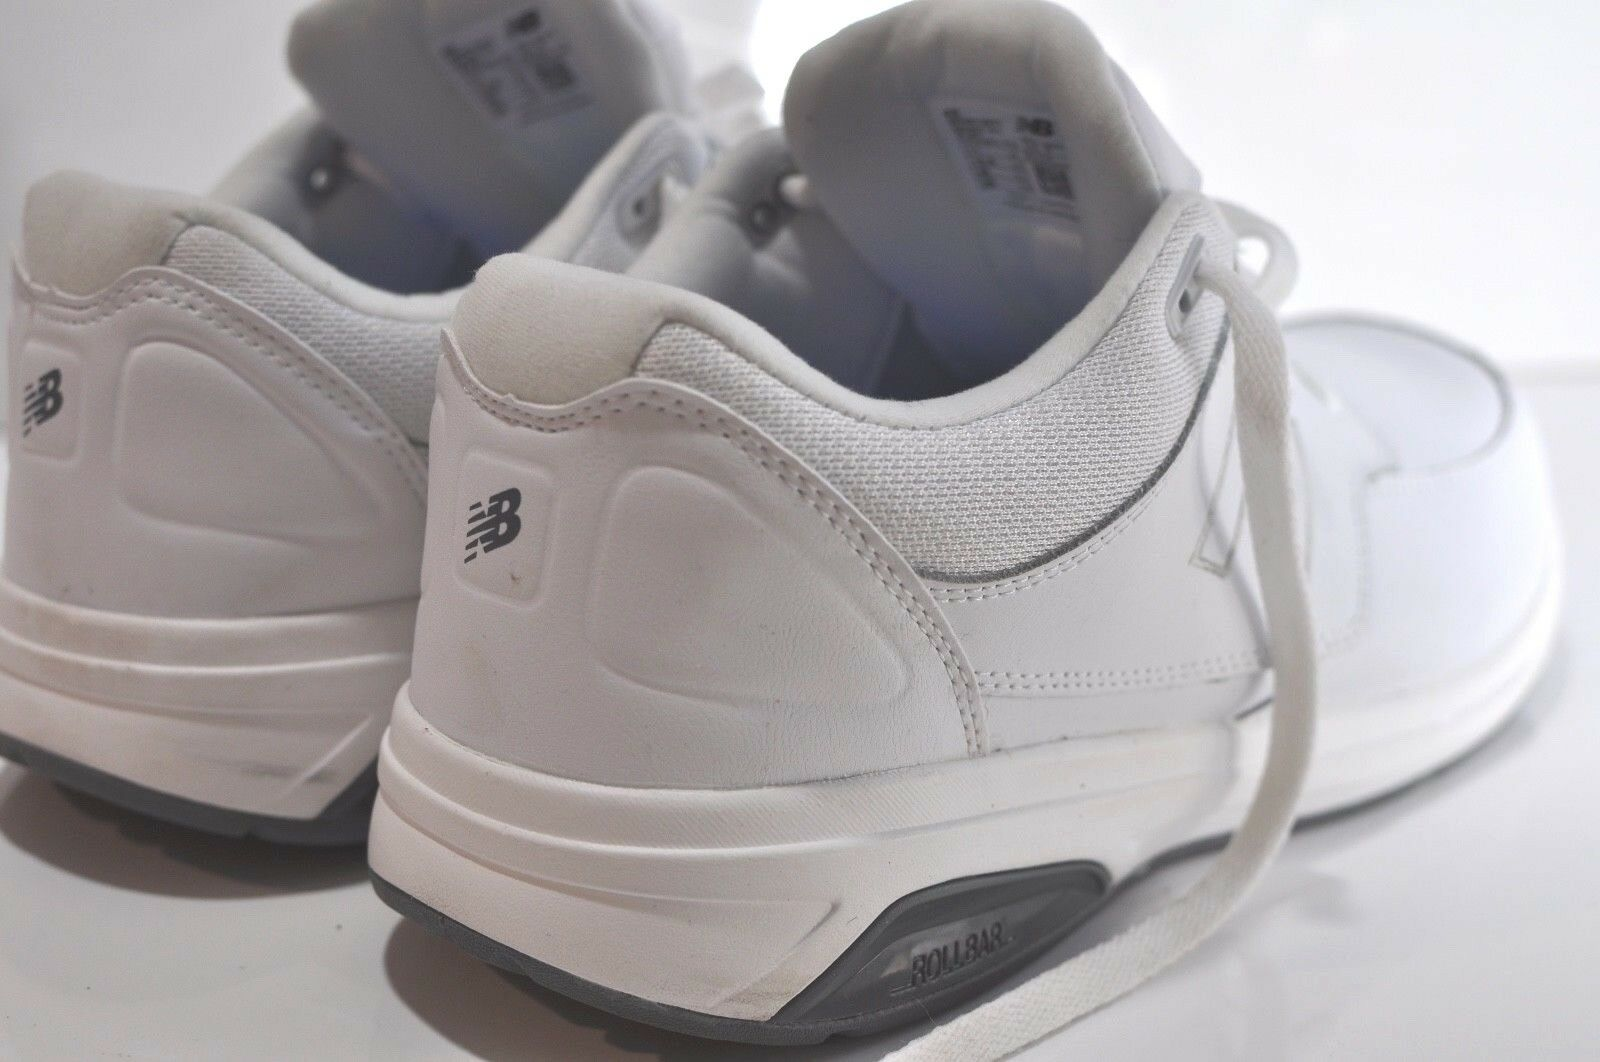 New Balance shoes E 4 11 size walking White Mens 813